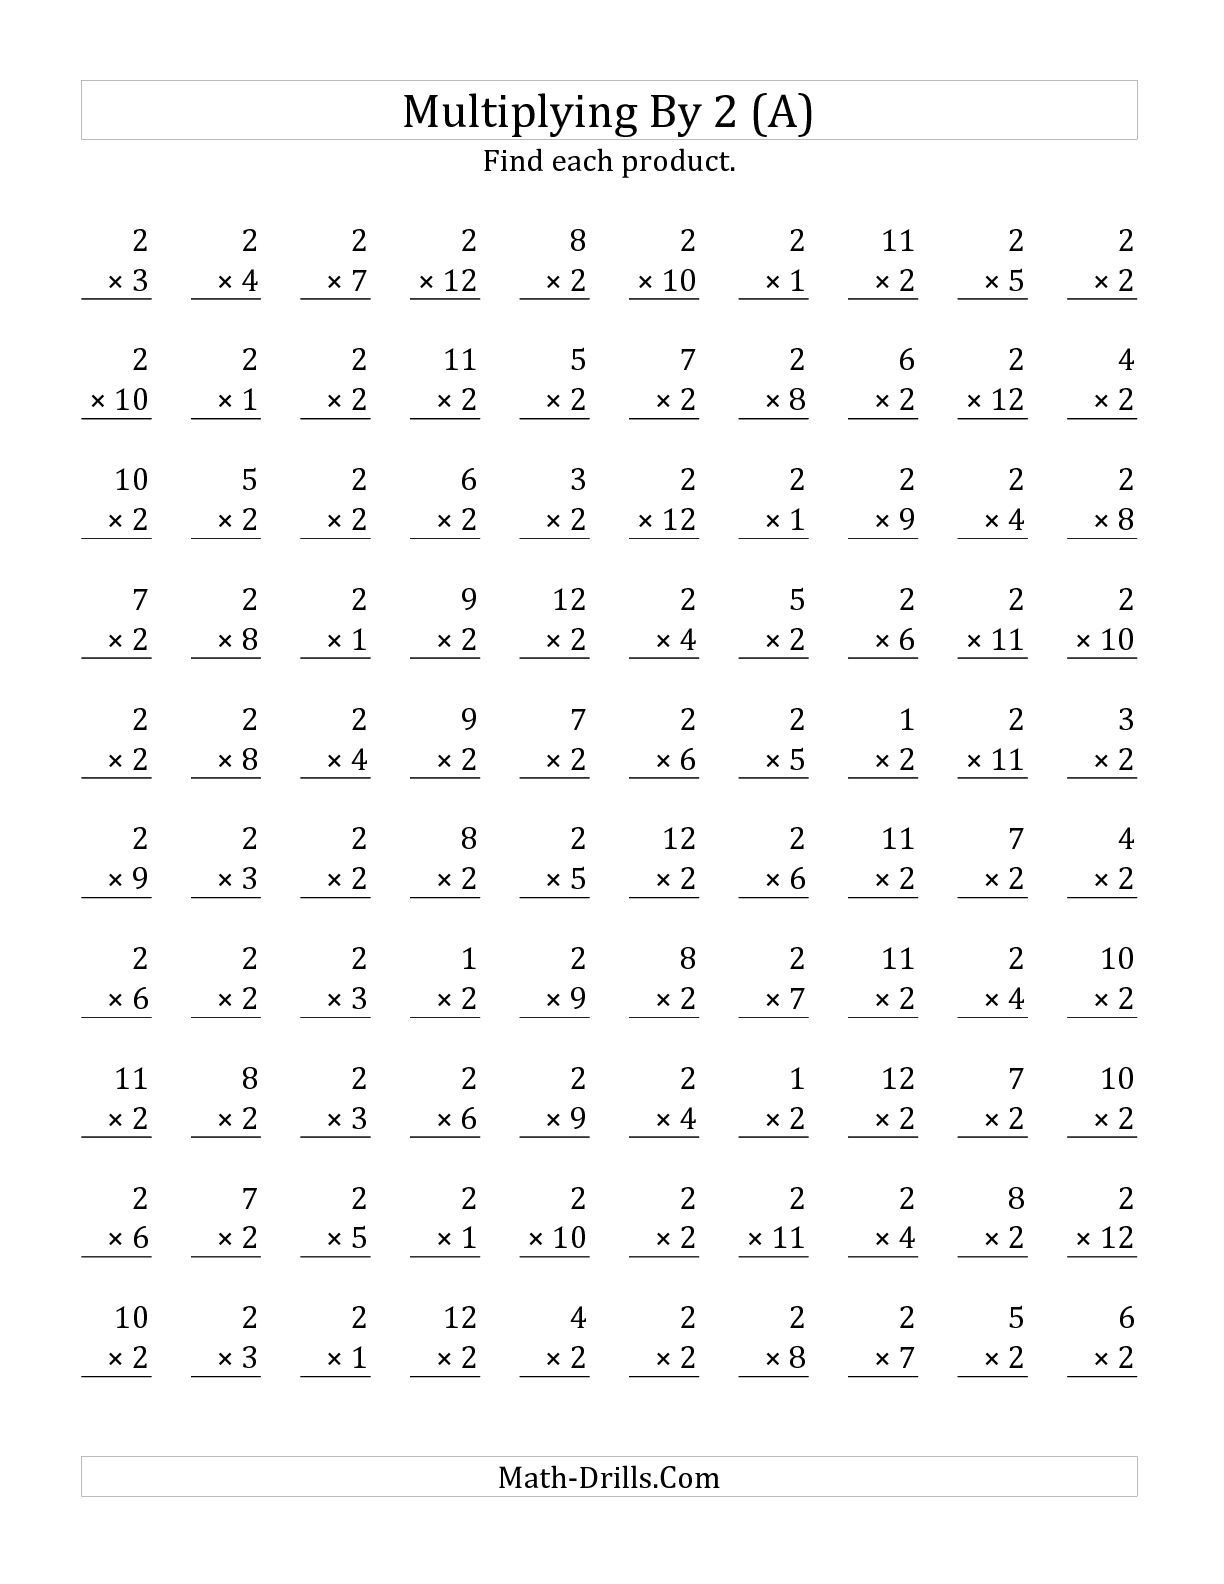 Multiplication Worksheet 1 12 the Multiplying 1 to 12 by 2 A Math Worksheet From the